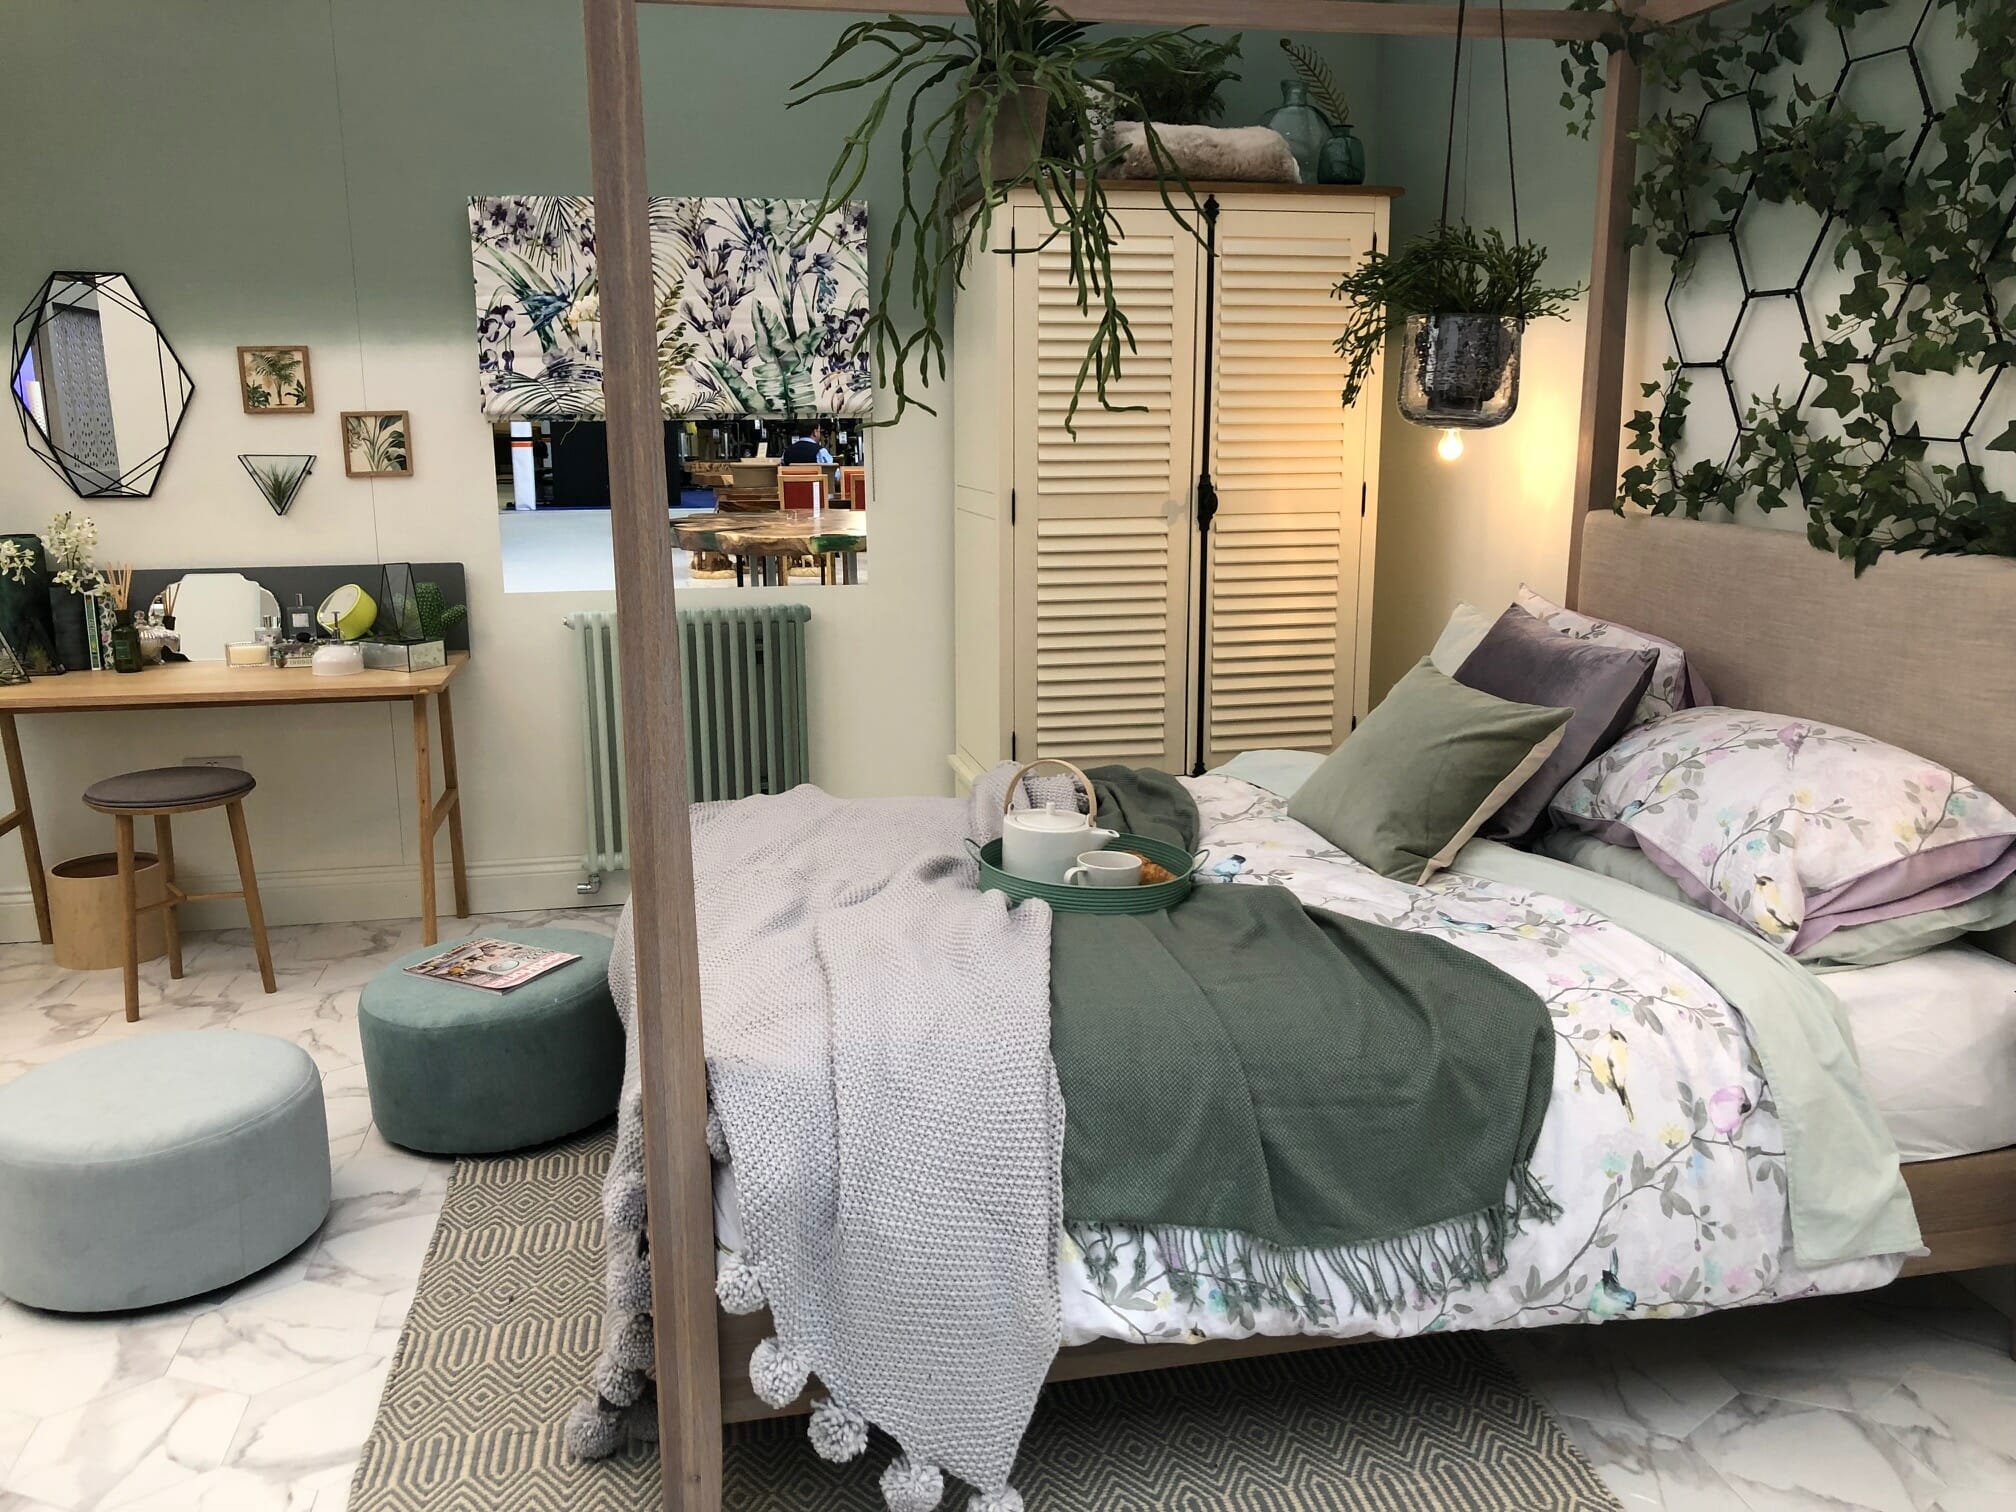 Interiors Envy at the Good Homes Magazine Roomsets